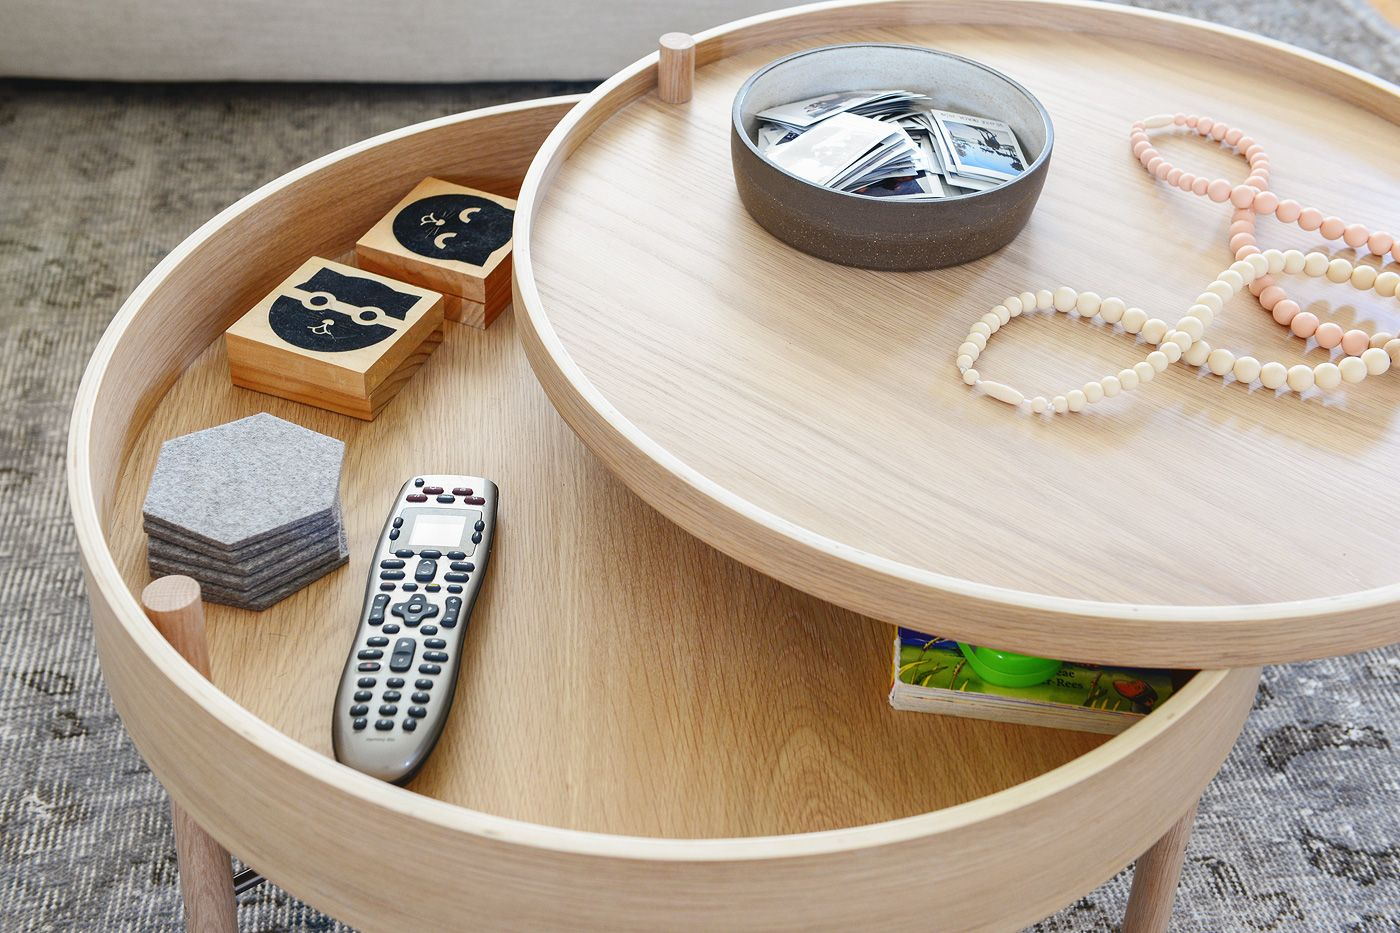 30 Coffee Tables For When You Re Short On Space Coffee Table Small Space Small Coffee Table Table For Small Space [ 933 x 1400 Pixel ]